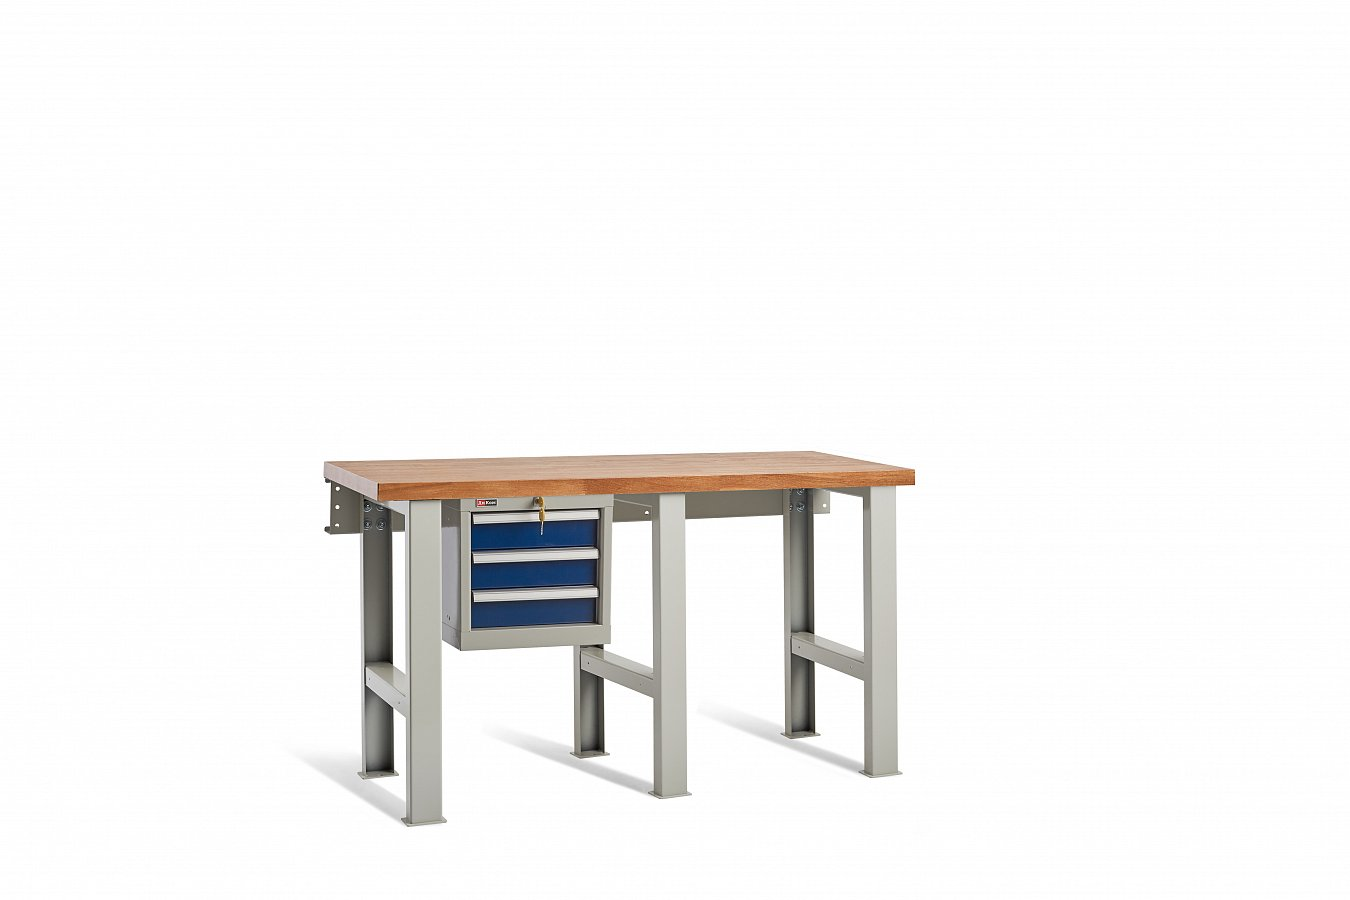 DiKom Workbench VS-150-02 (7)